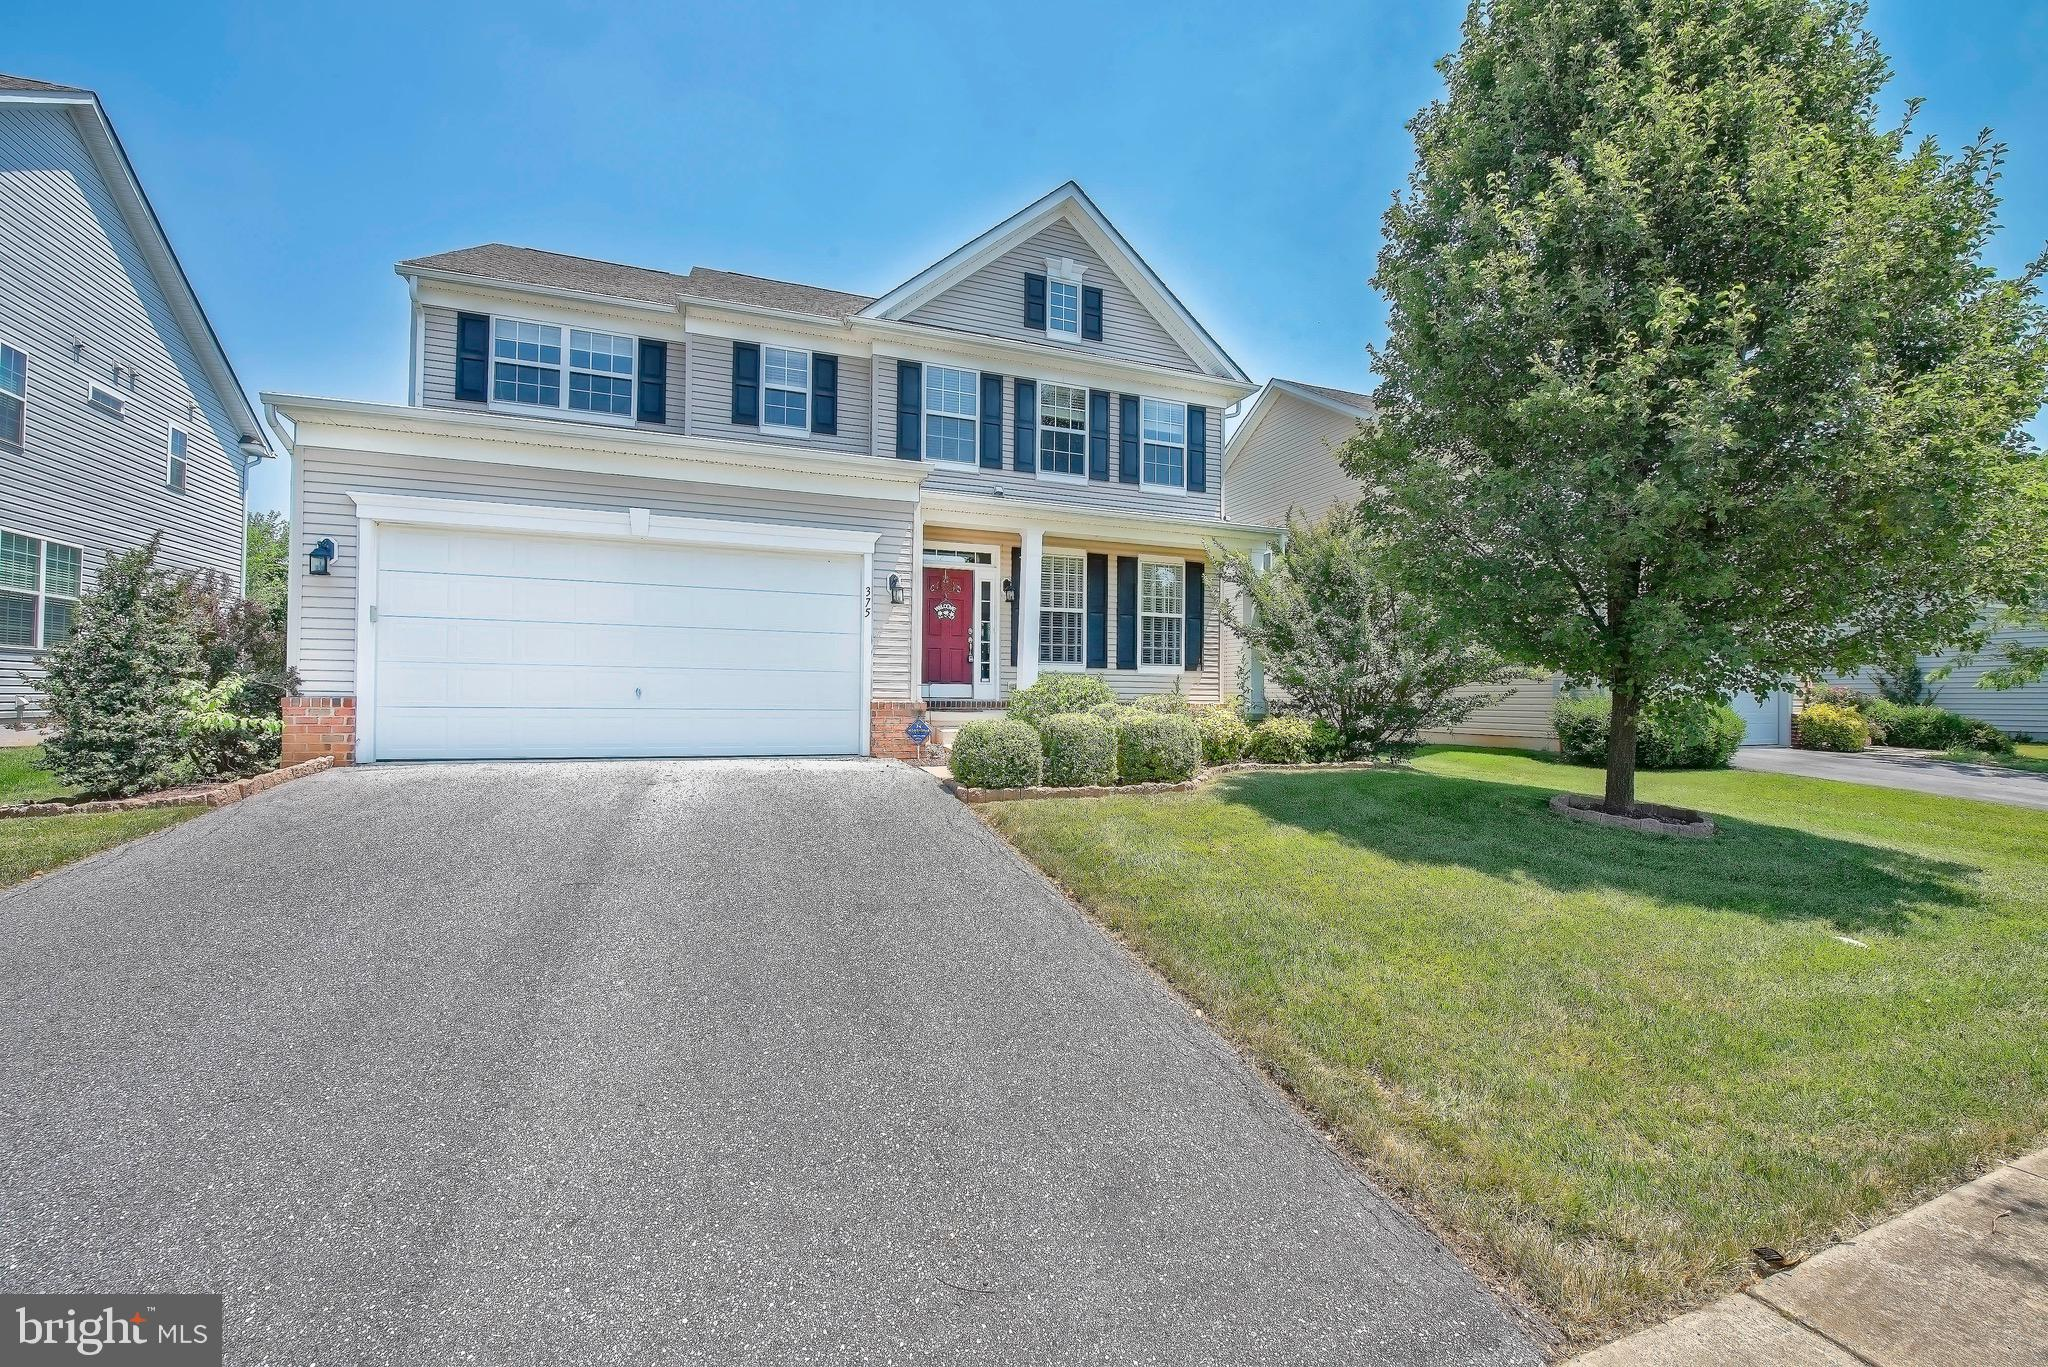 """Welcome to the beautiful, sought out community of Willow Grove Mill! If you would like a fully functional, single family home, in the Appoquinimink School district and have convenience to route 1 and 13, then look no further! 375 Northhampton Drive is perfect in so many ways! From the minute you walk through the front door, you will see beautiful hardwood floors throughout the main level! Every room in the house is functional, from the dining room to the large sunlit four seasons room! The kitchen has 42"""" cabinets, upgraded granite countertops, pantry, newer stainless steel fridge and dishwasher. The living room has a gas fireplace and crown molding. You have two sliding glass doors leading out to the trex deck, an awning for those sunny days, and backing up to a lovely tree lined view! Upstairs you will find a very generous sized master bedroom, with two closets, a large master bath with a double vanity, stand up shower and large soaking tub! There are three additional bedrooms, all with ceiling fans and a second floor laundry!! But wait... there's more! This one has a full finished basement!! There is storage galore with a large closet under the stairs, a large area for storage, a perfect sized room that could be used for multiple uses, and a beautiful half bath. Willow Grove Mill is a friendly and beautiful place to live! Schedule your tour now, you won't be sorry!"""